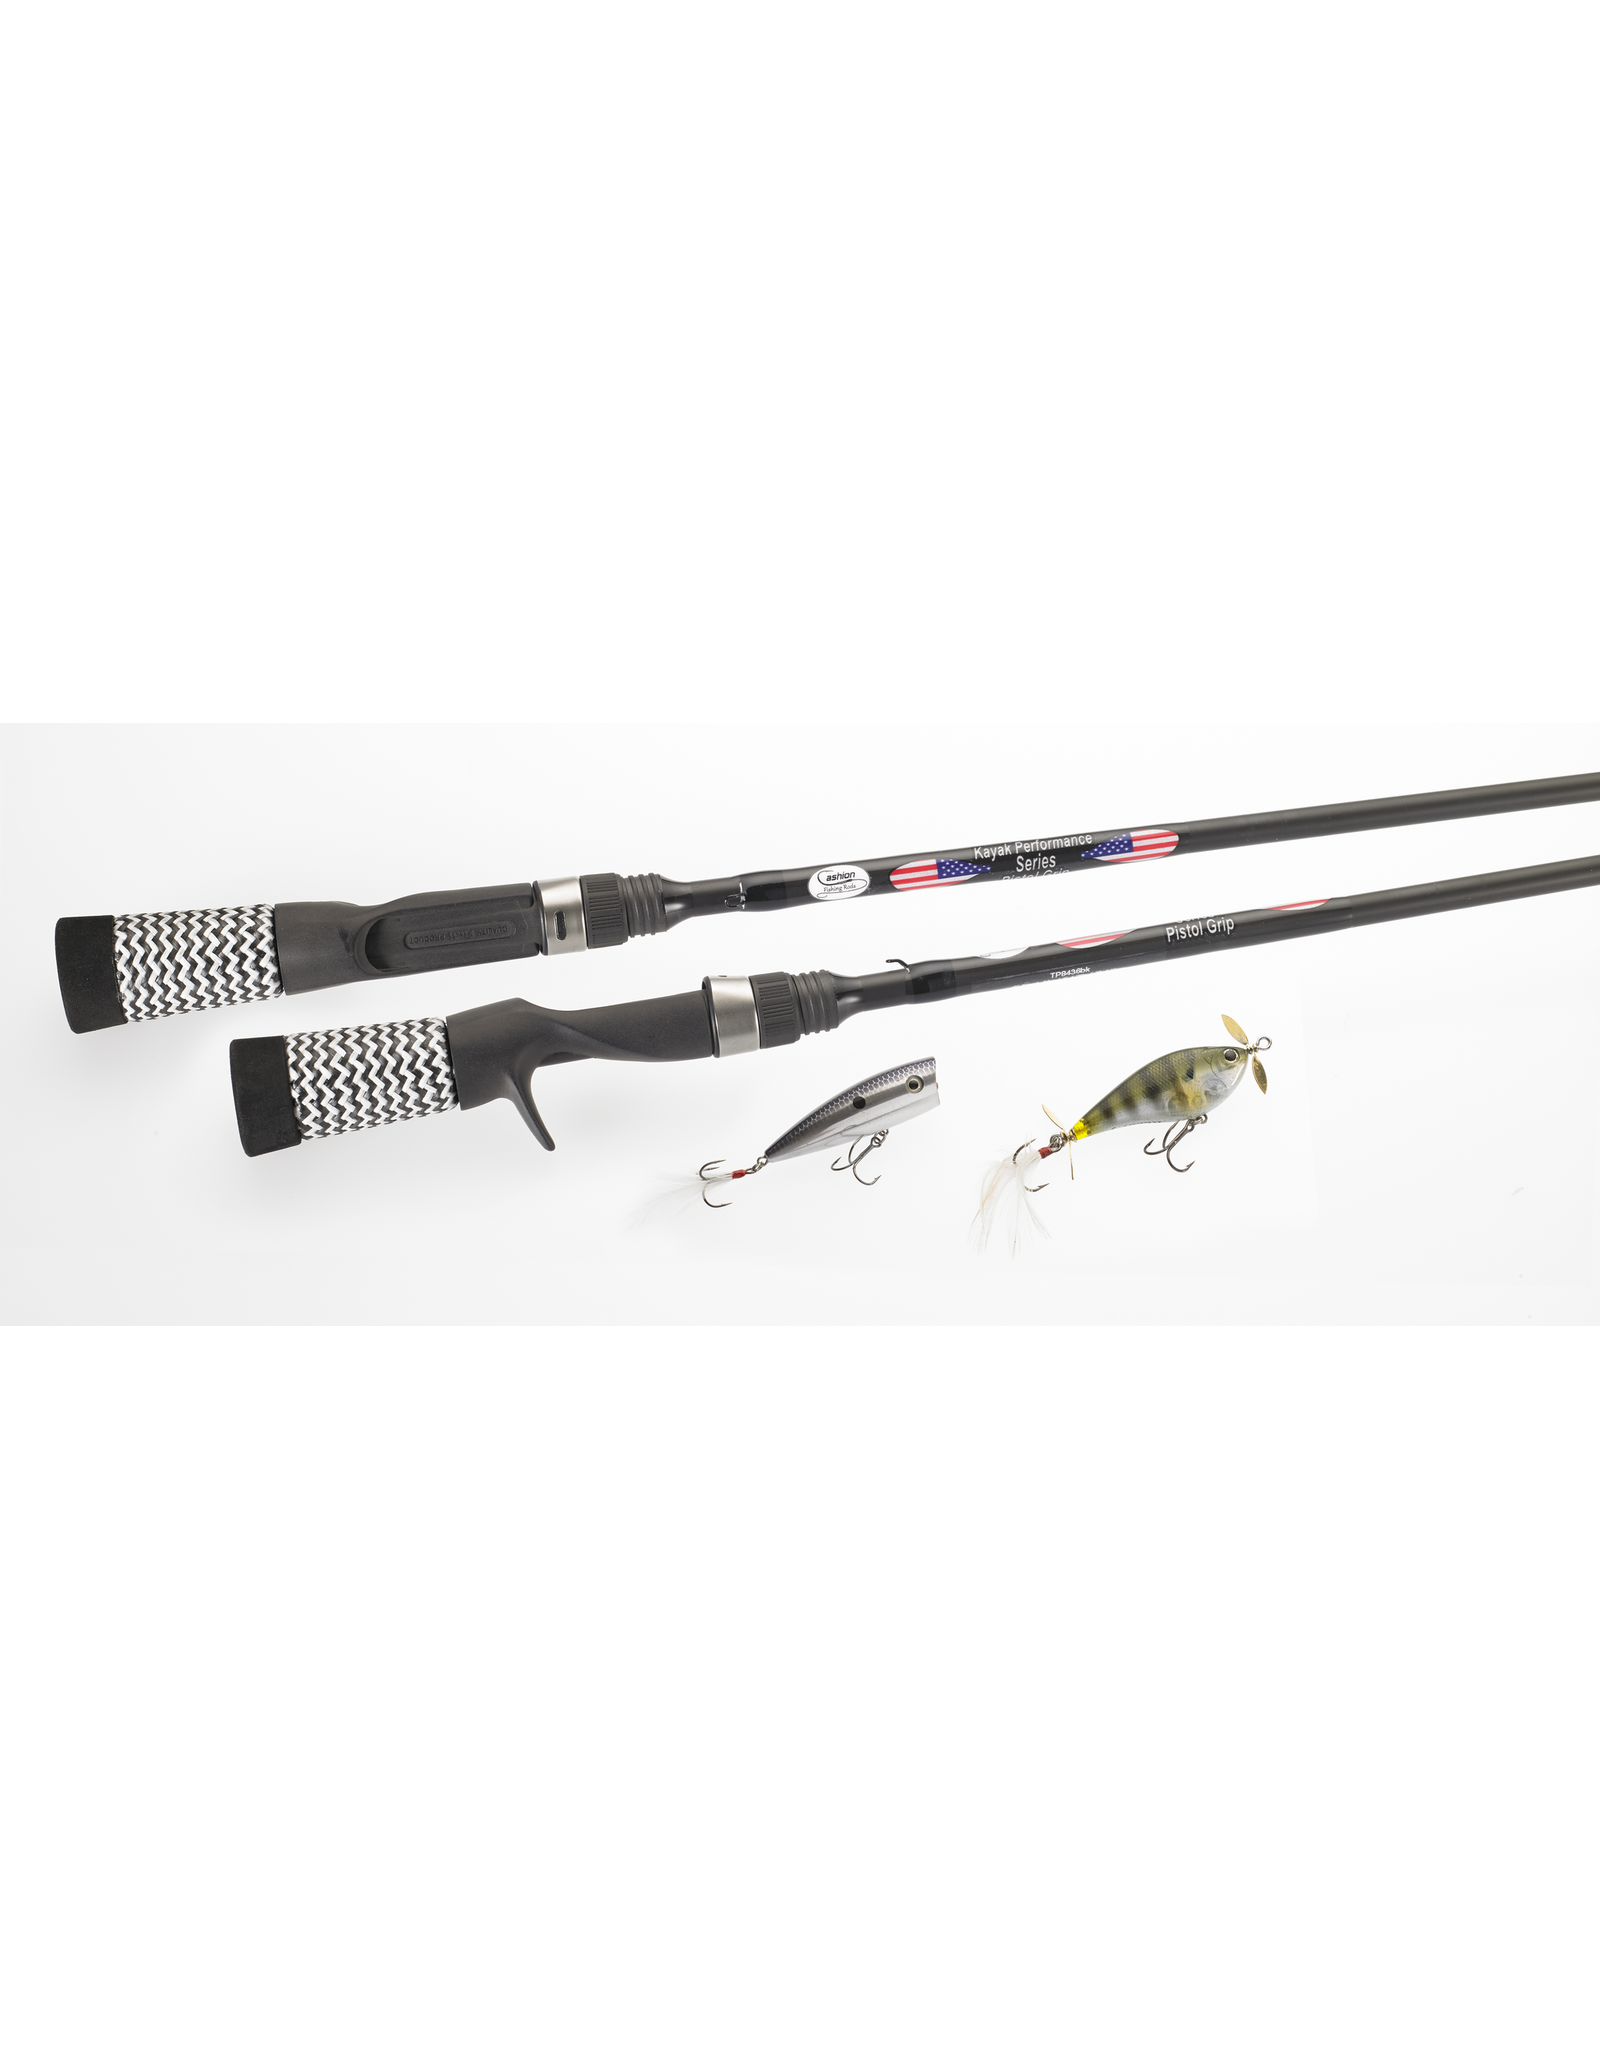 Cashion Rods Cashion Rod Kayak Pistol Grip 6' Fast,Med